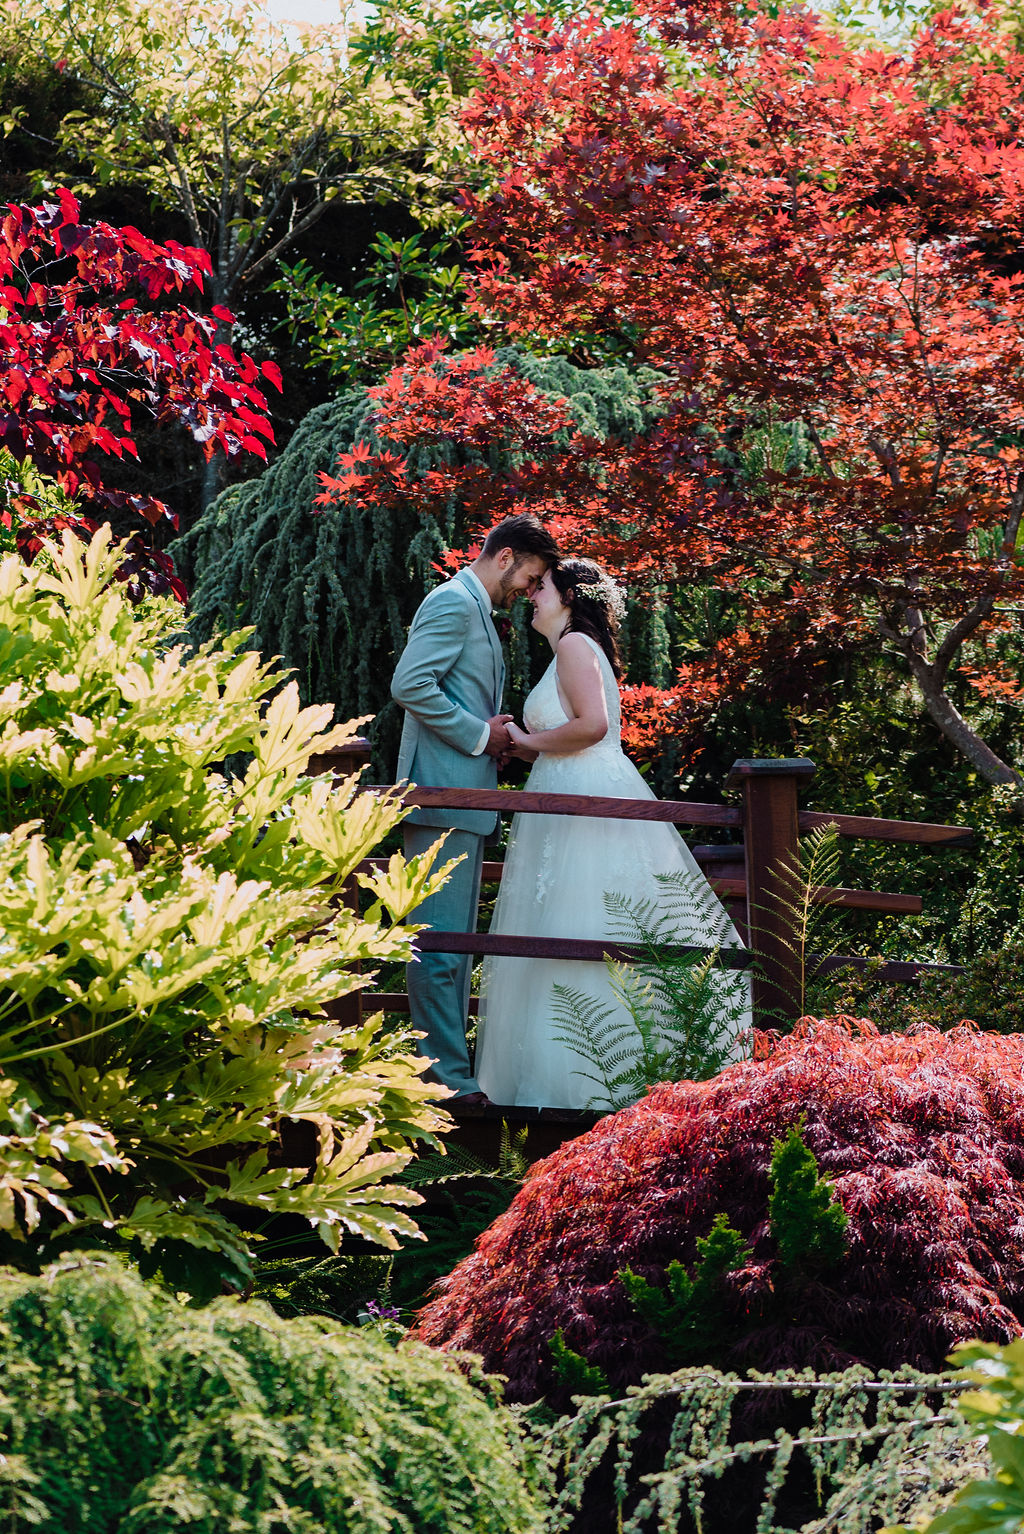 Newlyweds on foot bridge in garden of red and yellow bushes on Vancouver Island